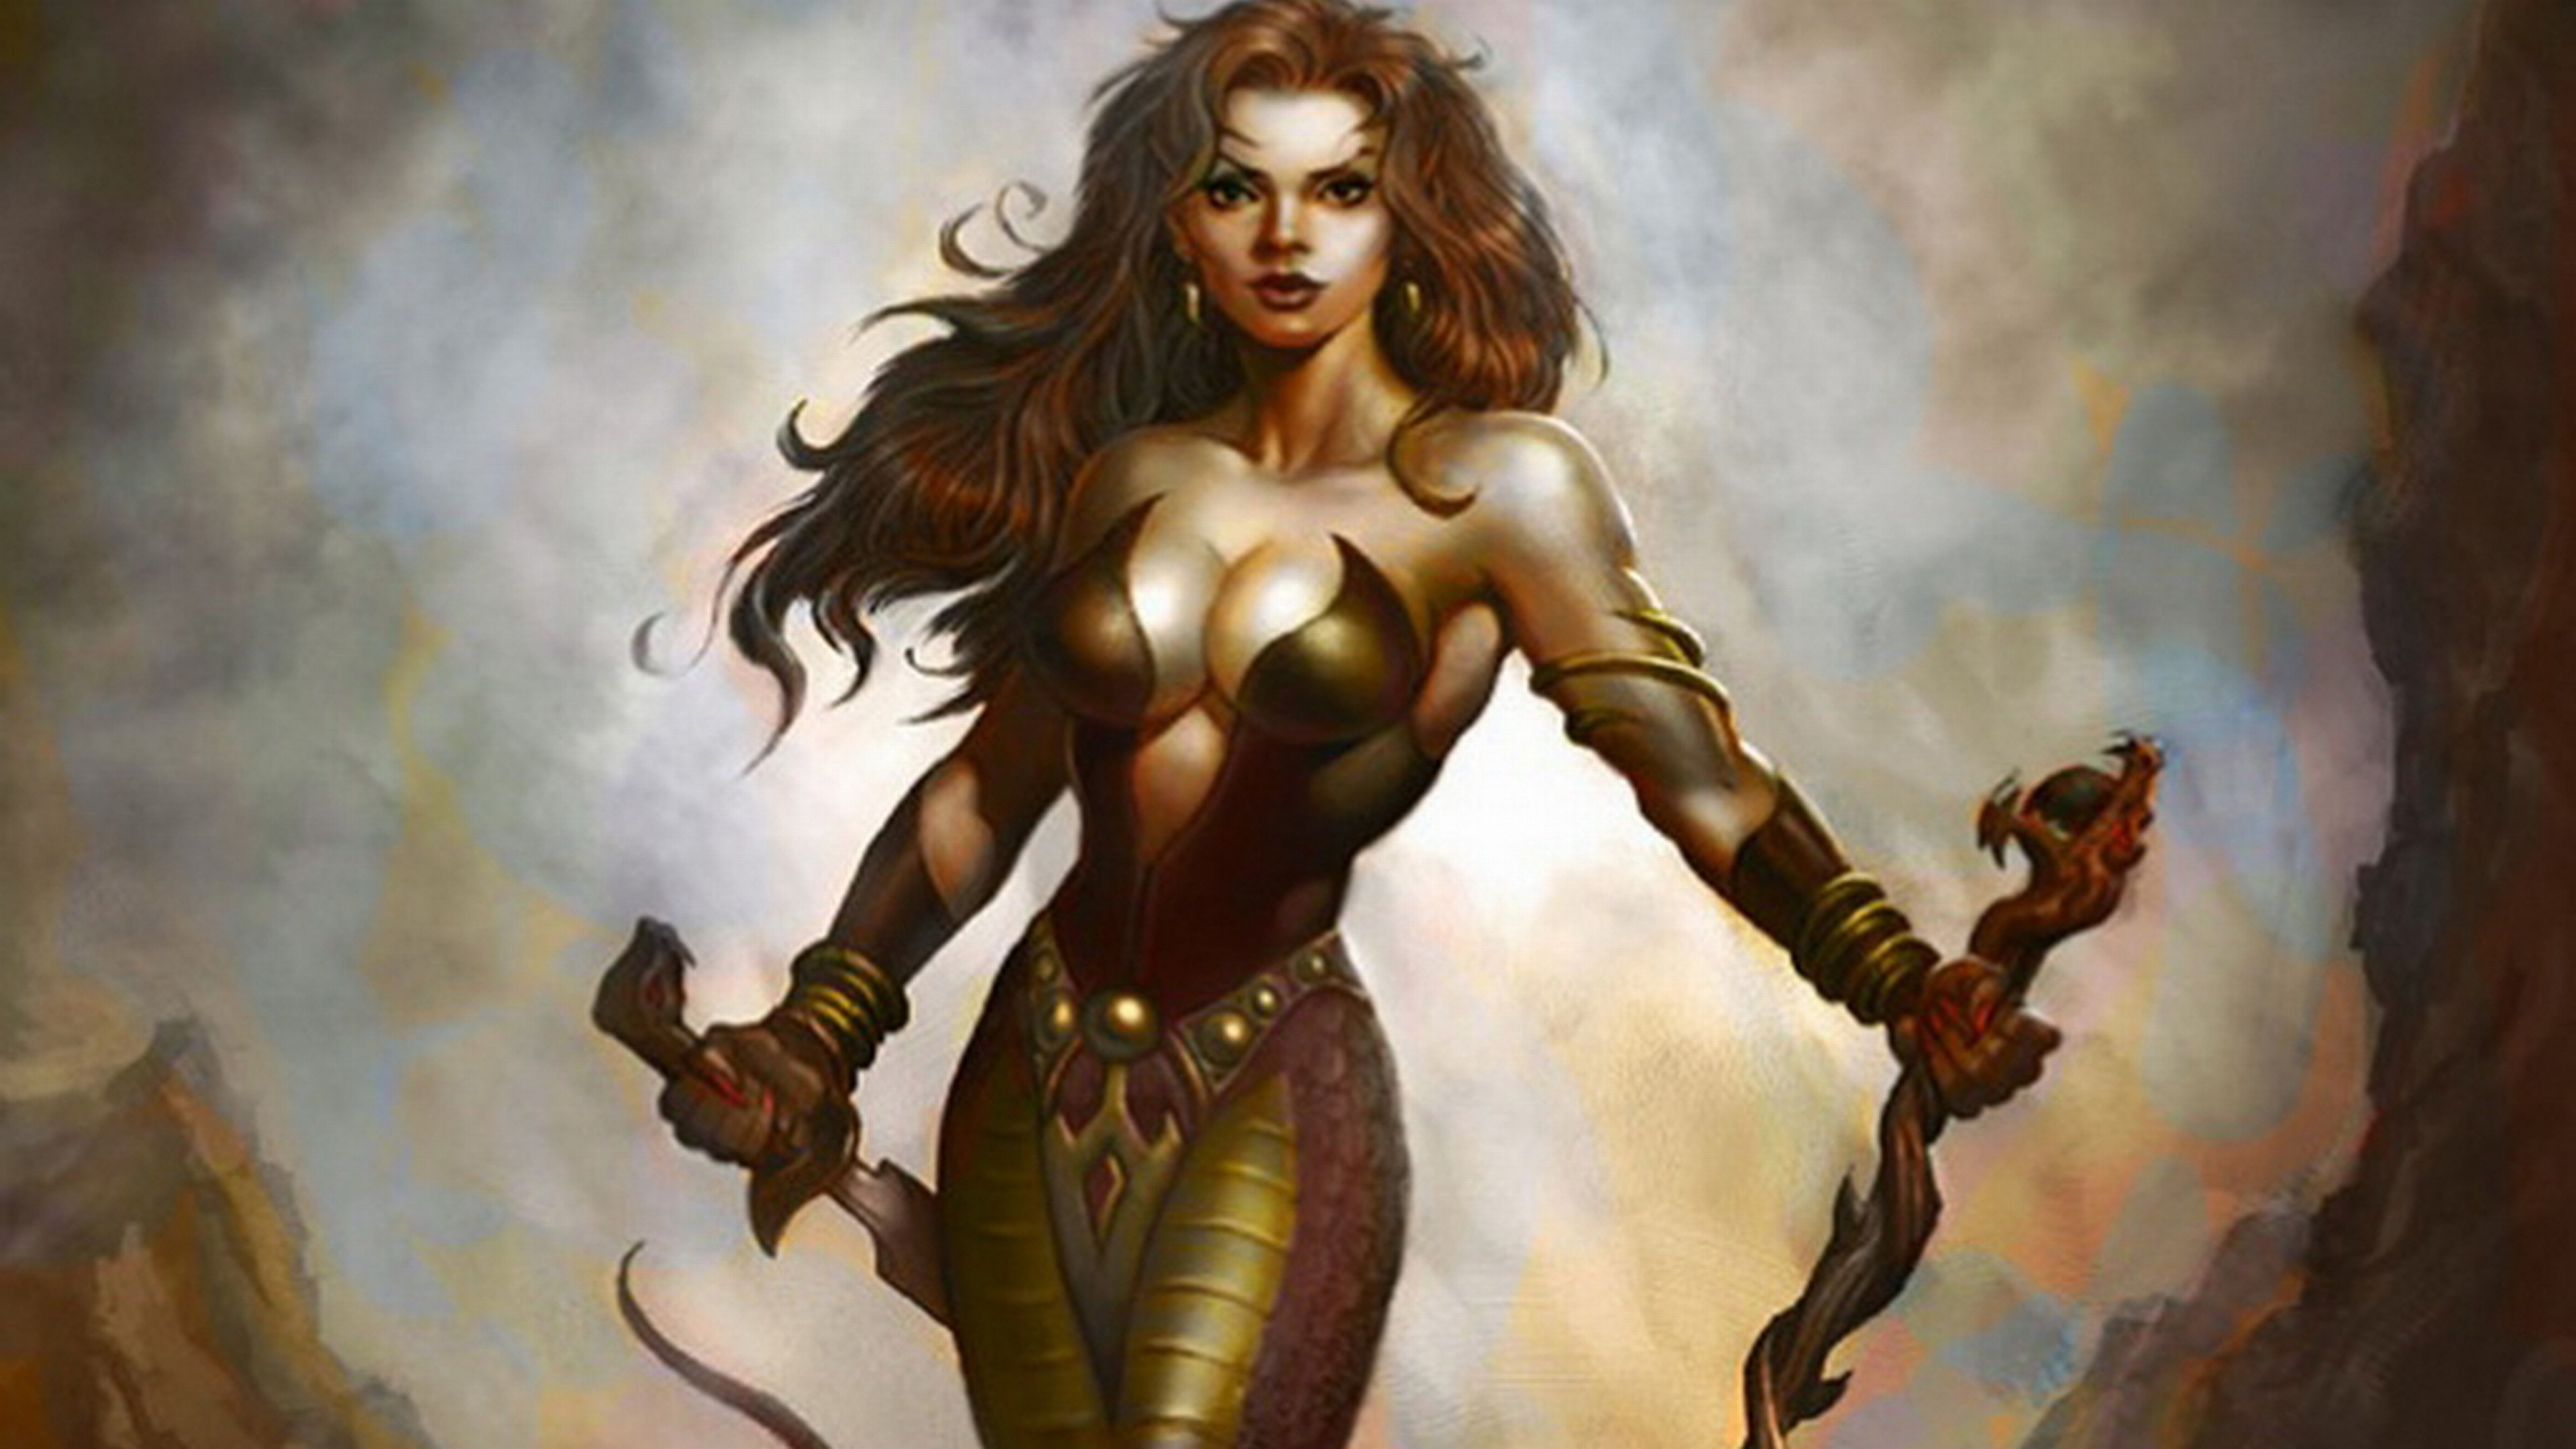 1136 Women Warrior HD Wallpapers   Backgrounds – Wallpaper Abyss – Page 7